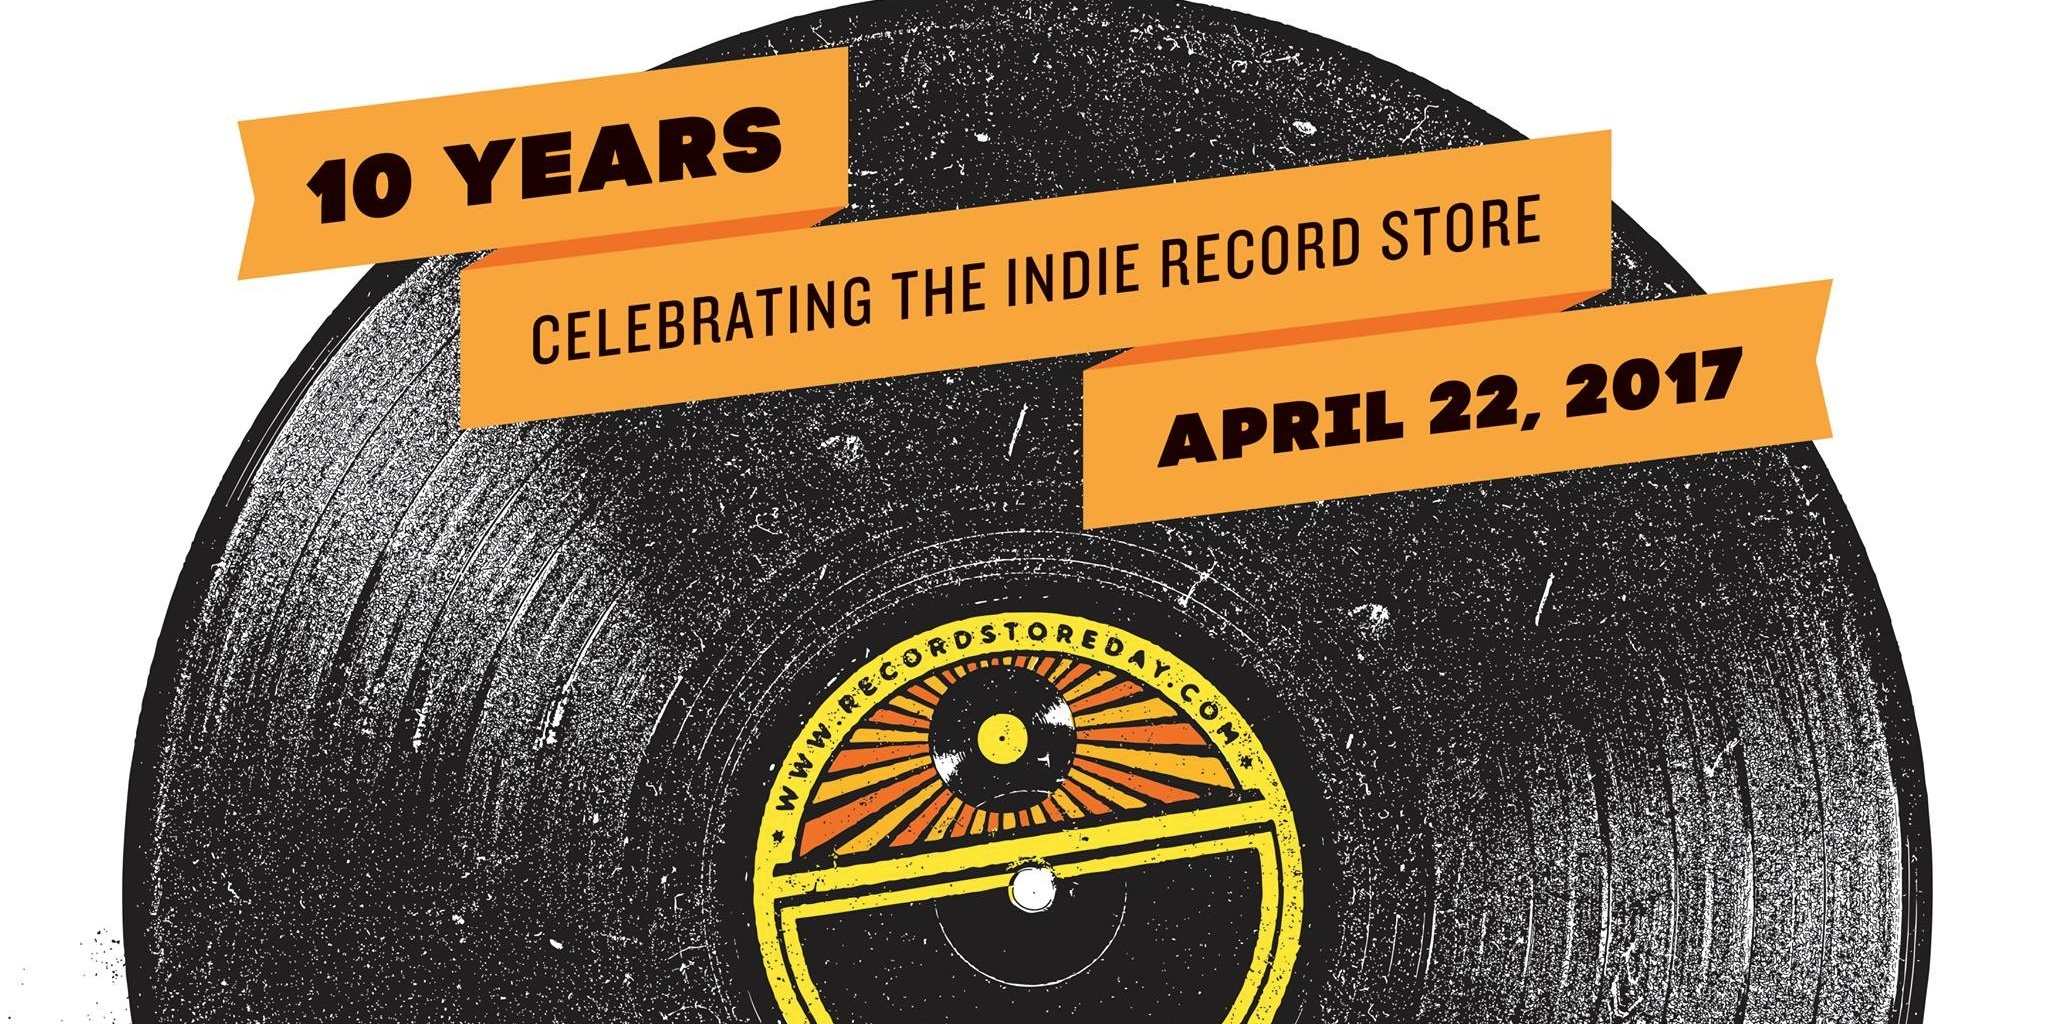 Audio Pilipinas celebrates 10 years of Record Store Day